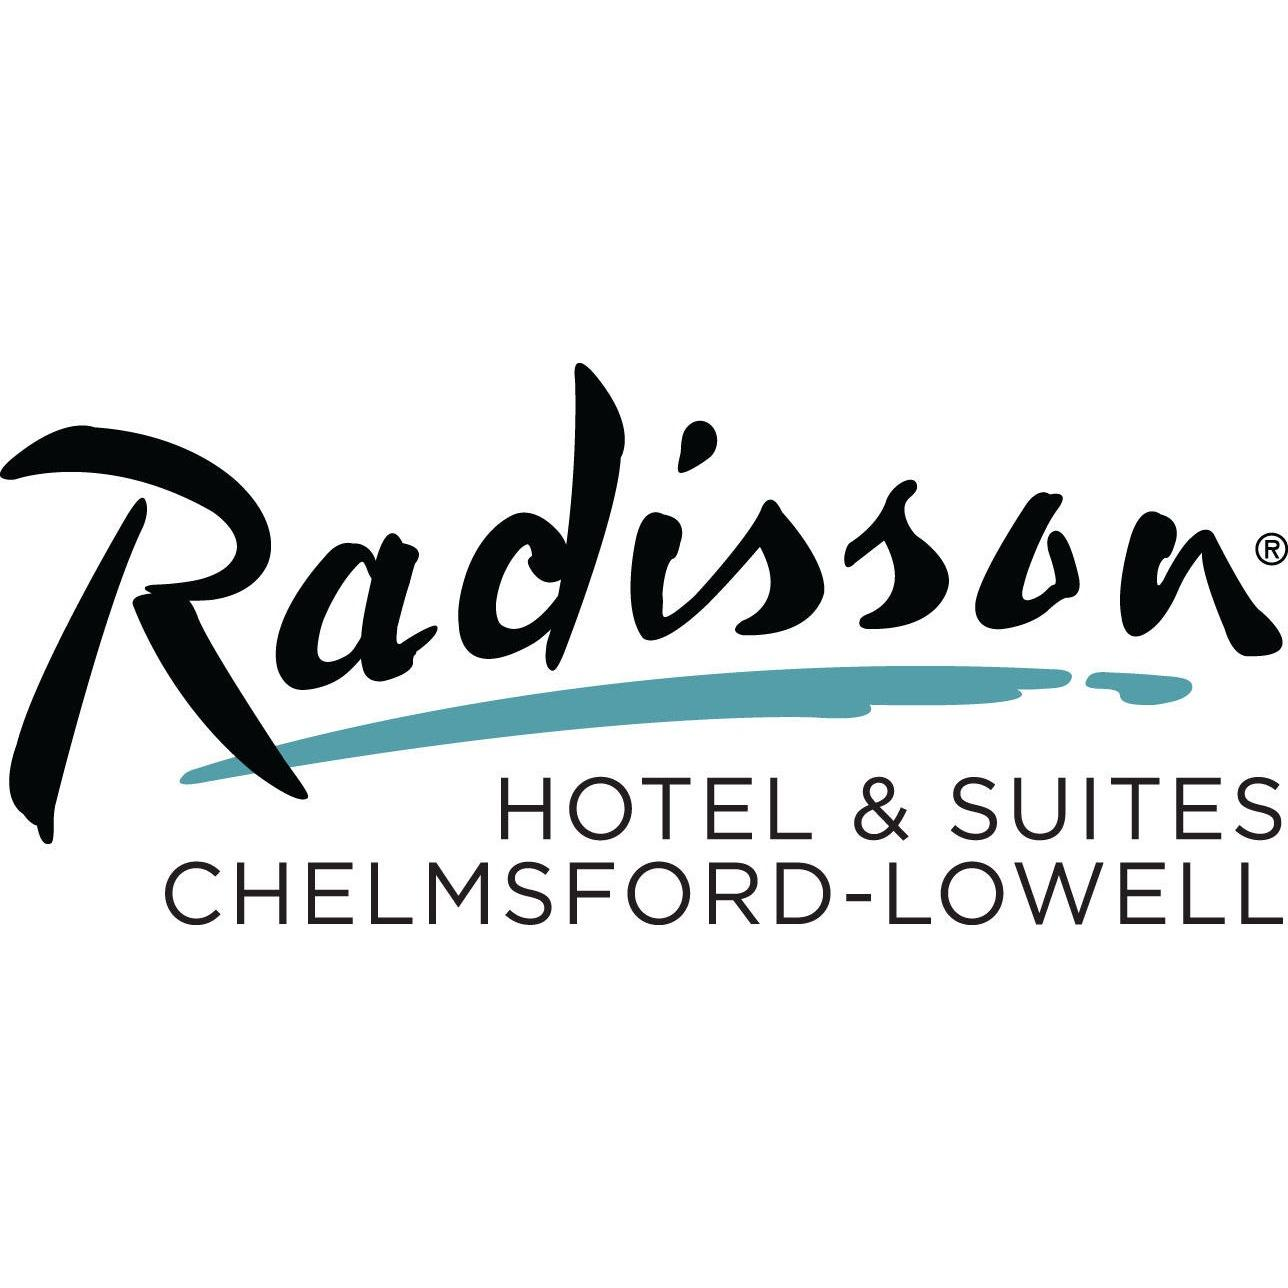 Radisson Hotel & Suites Chelmsford-Lowell - Closed in Chelmsford, MA, photo #1